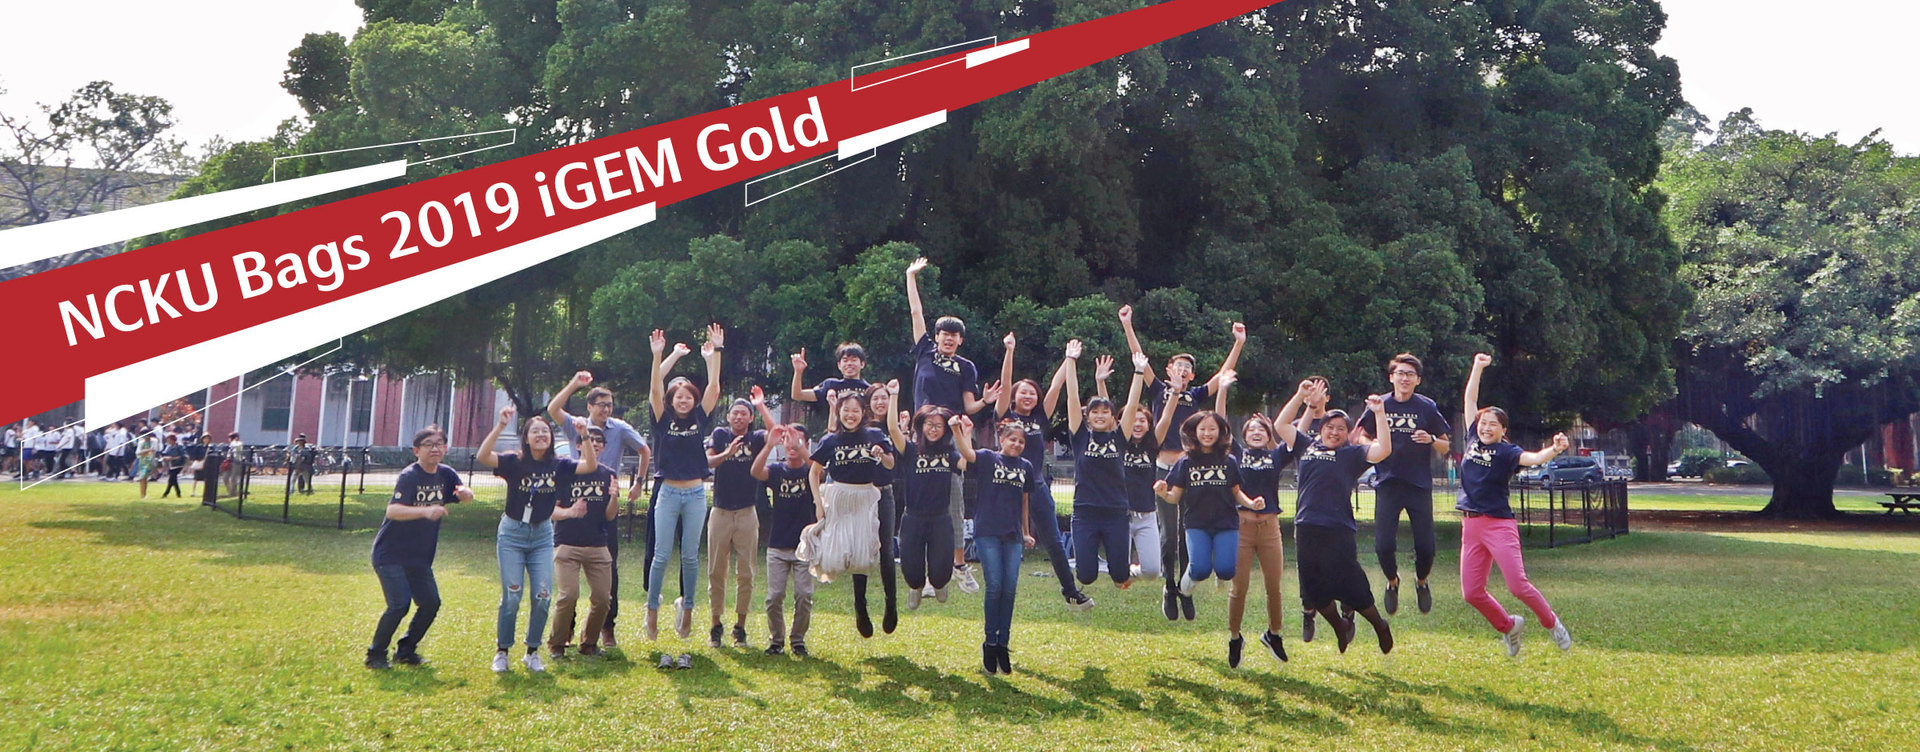 NCKU Tainan's chronic kidney disease solution bags iGEM gold